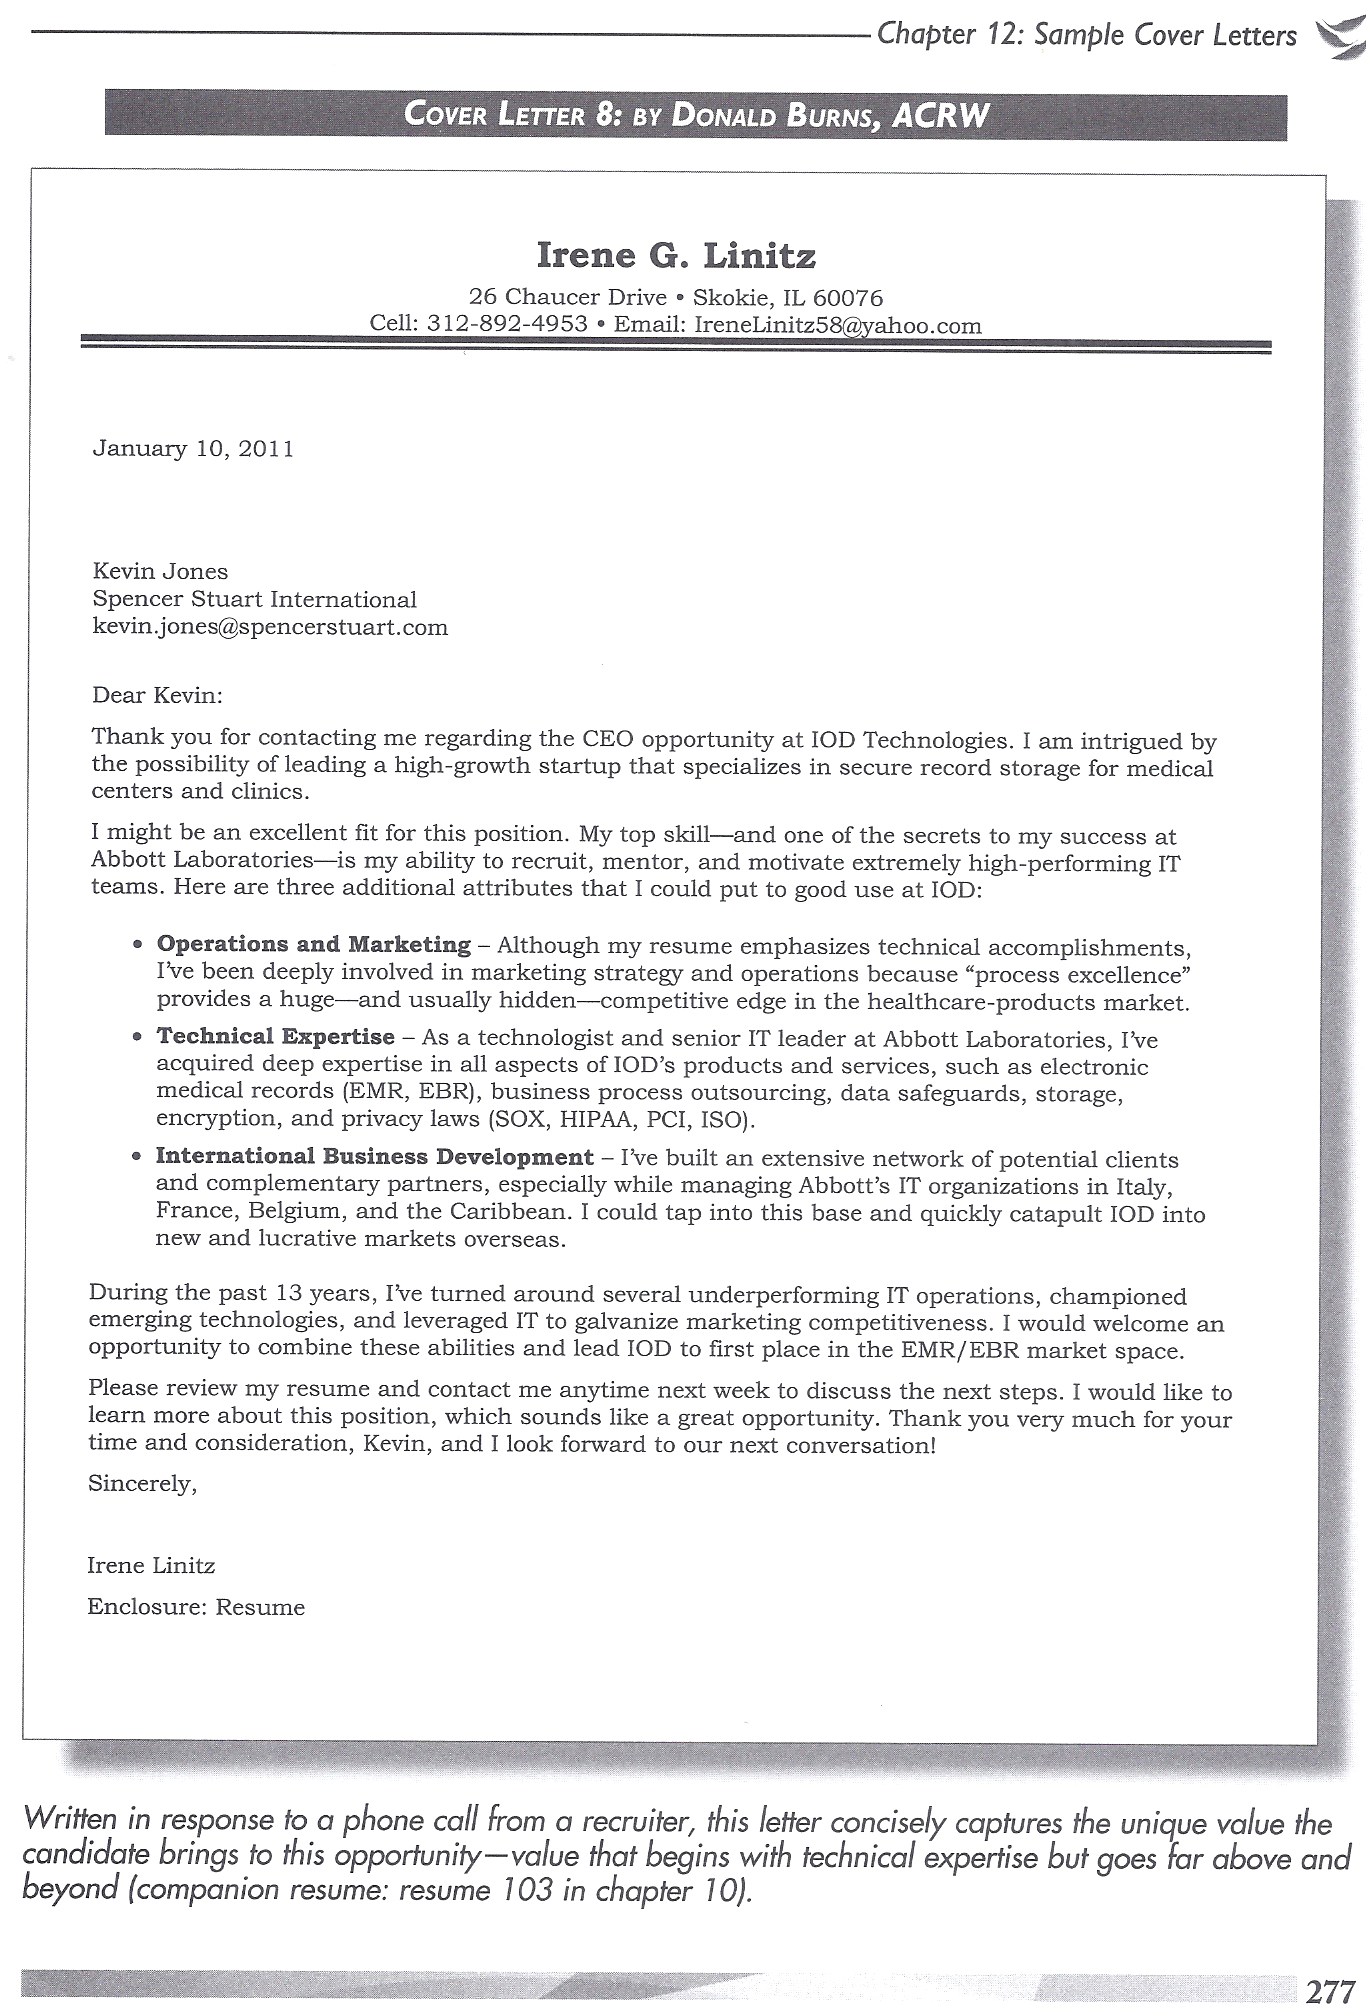 Engineering Resume Cover Letter Careerdefense